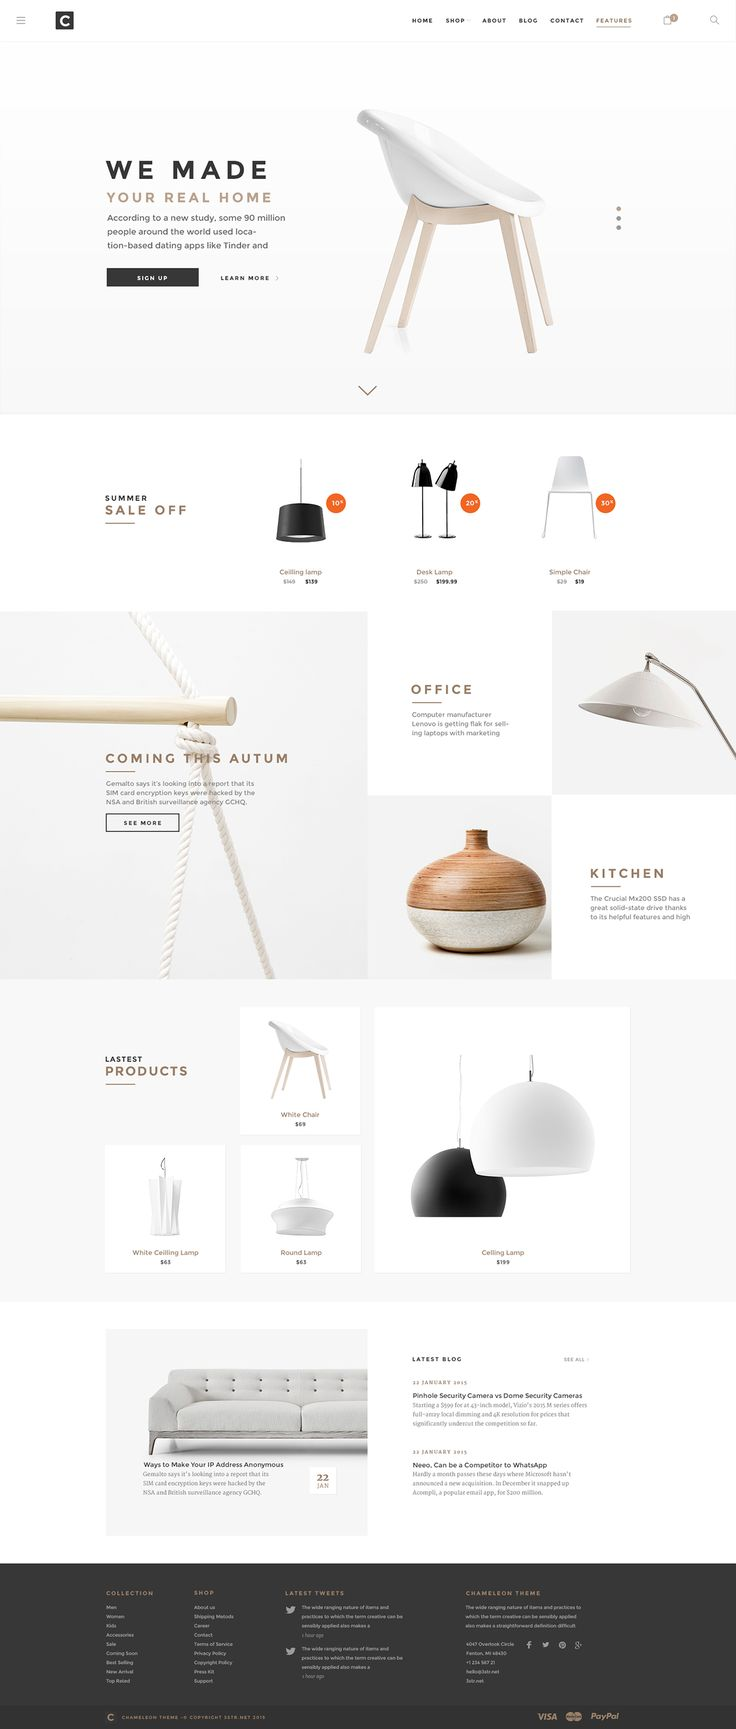 Chameleon Shop PSD Template is an unique eCommerce PSD template for on online…